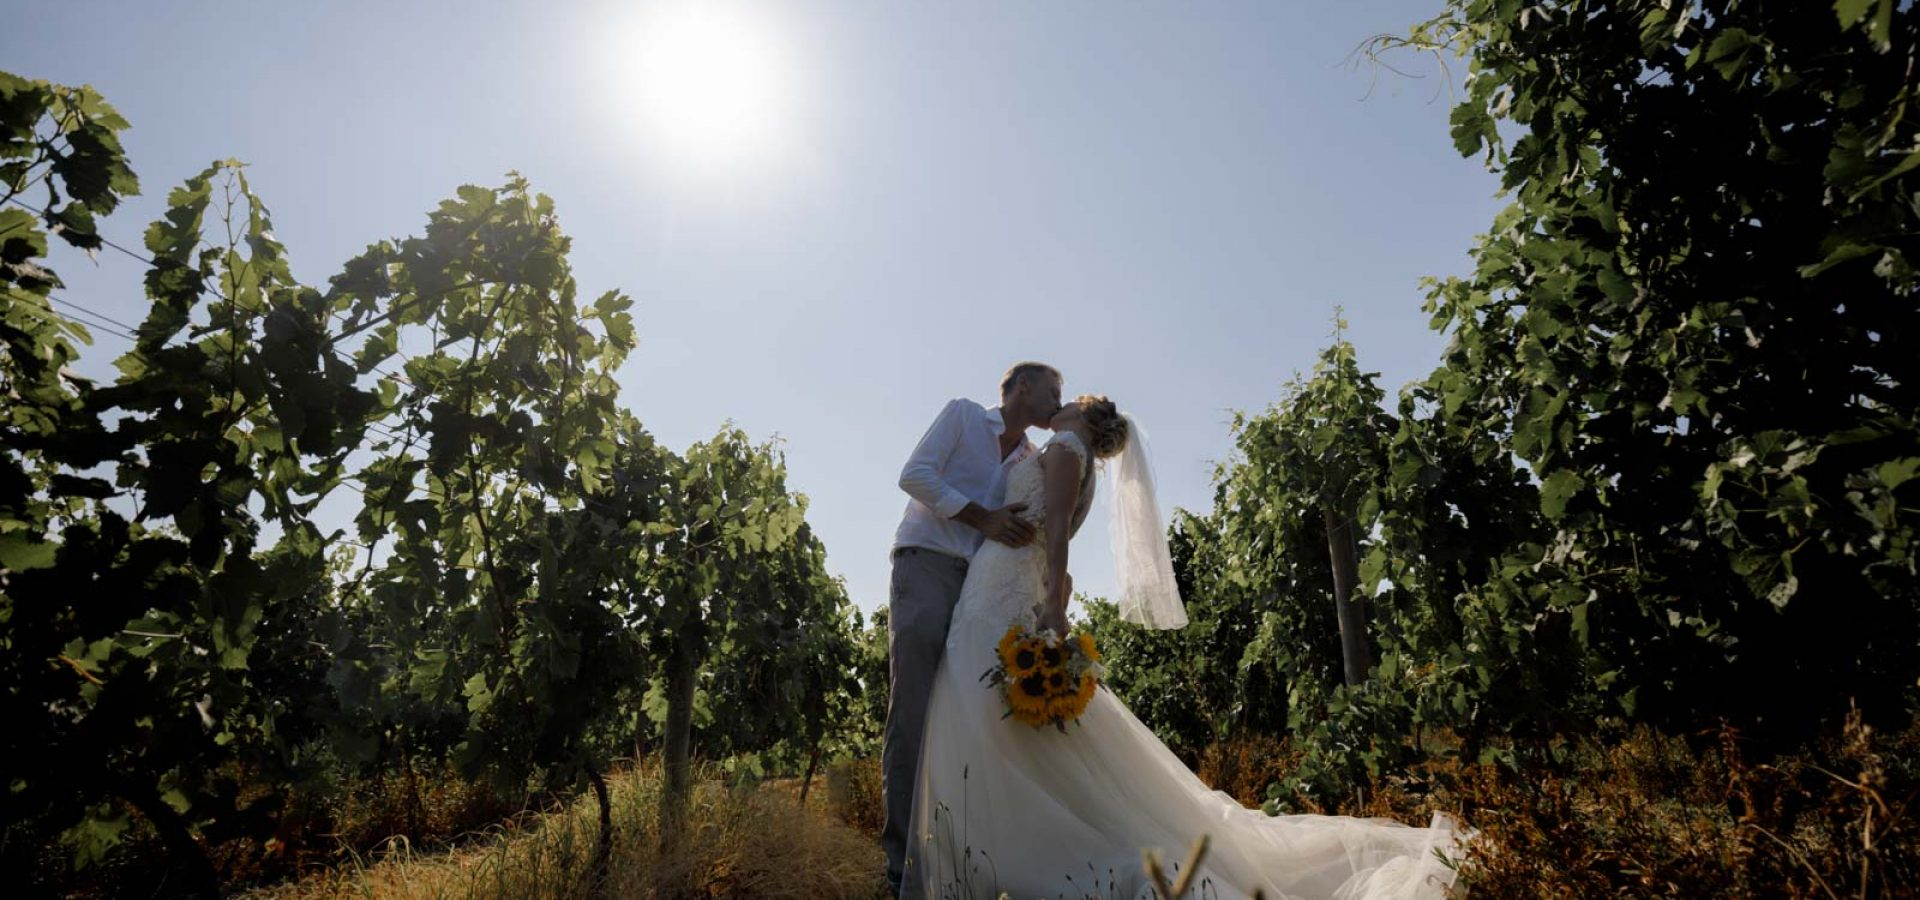 Couple kiss on wedding day in vineyards